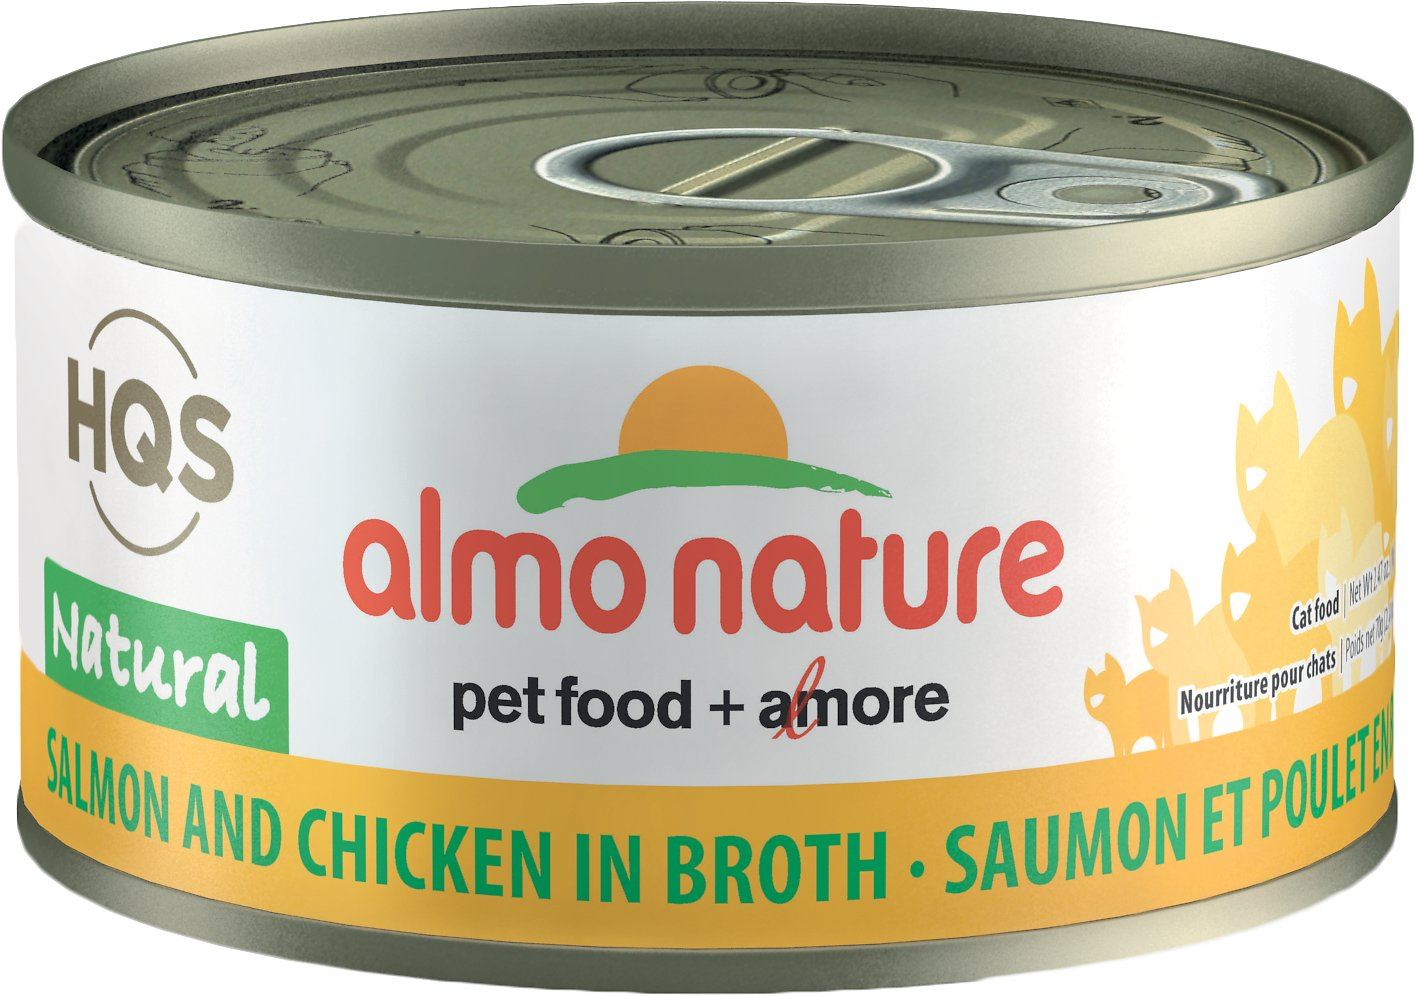 Almo Nature HQS Natural Salmon & Chicken in Broth Grain-Free Canned Cat Food, 2.47-oz